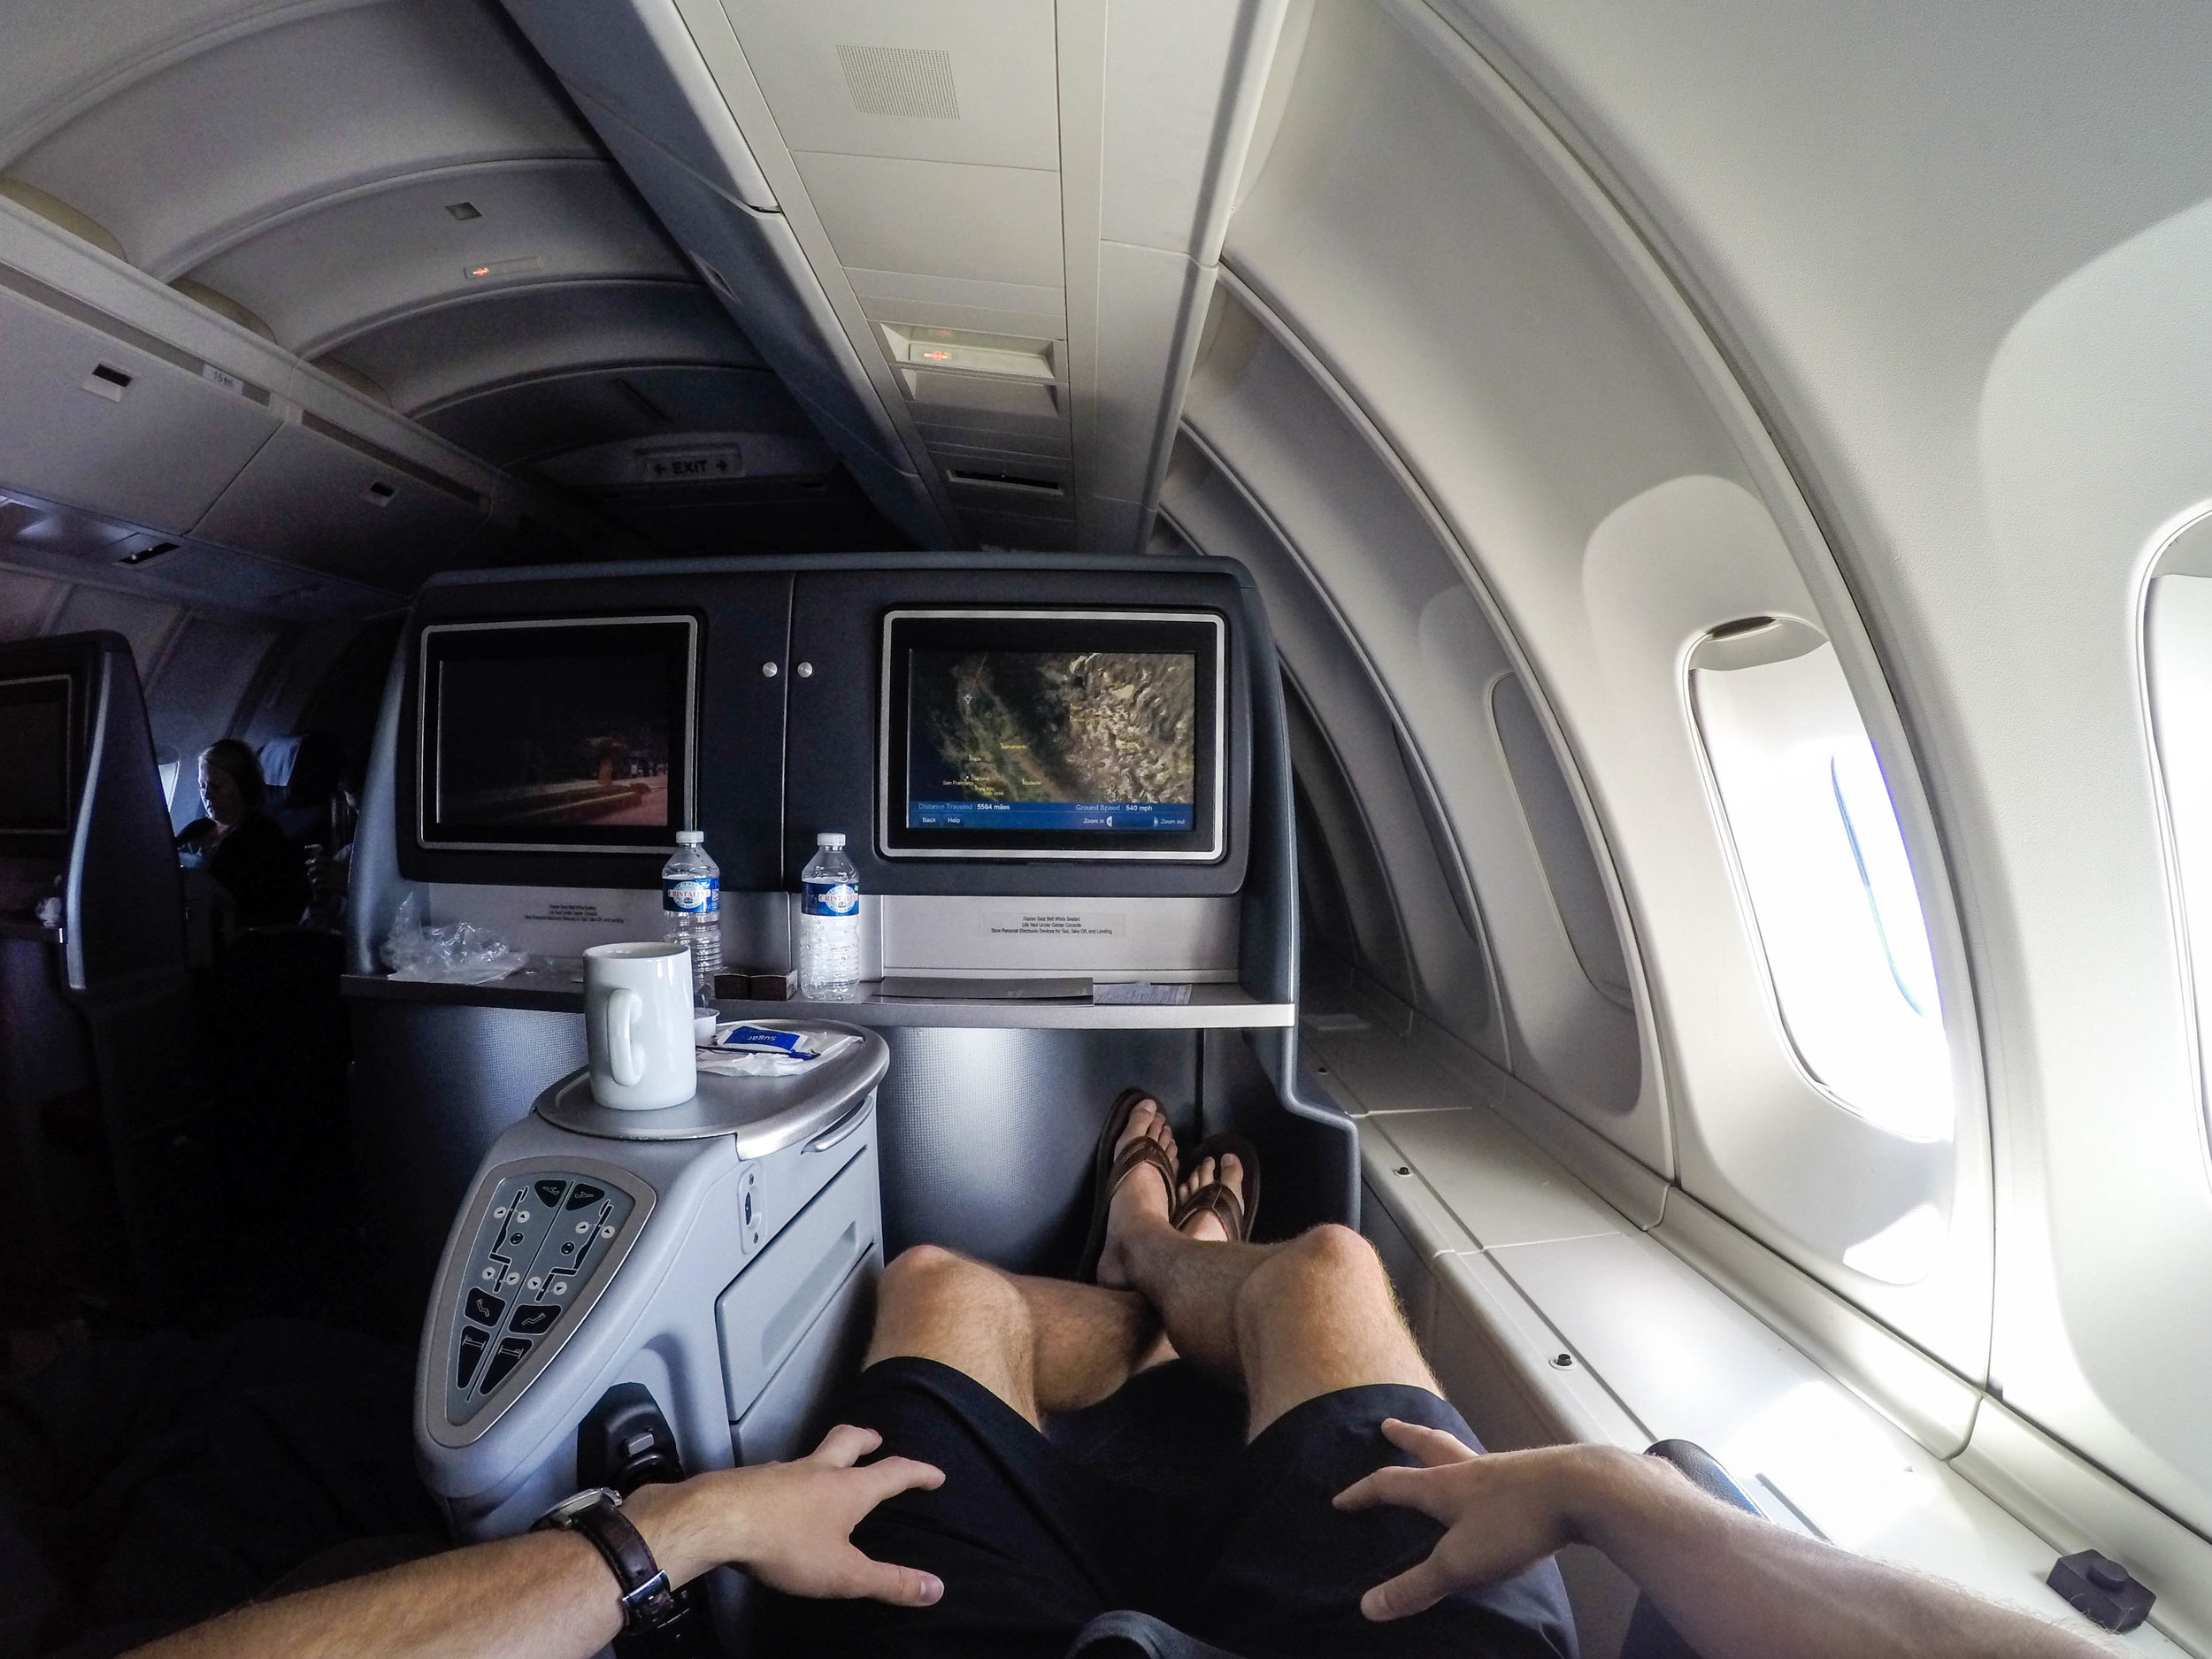 """Legroom was good though and when the seat is flat, the bins serve as additional """"bed"""" space, which was nice."""